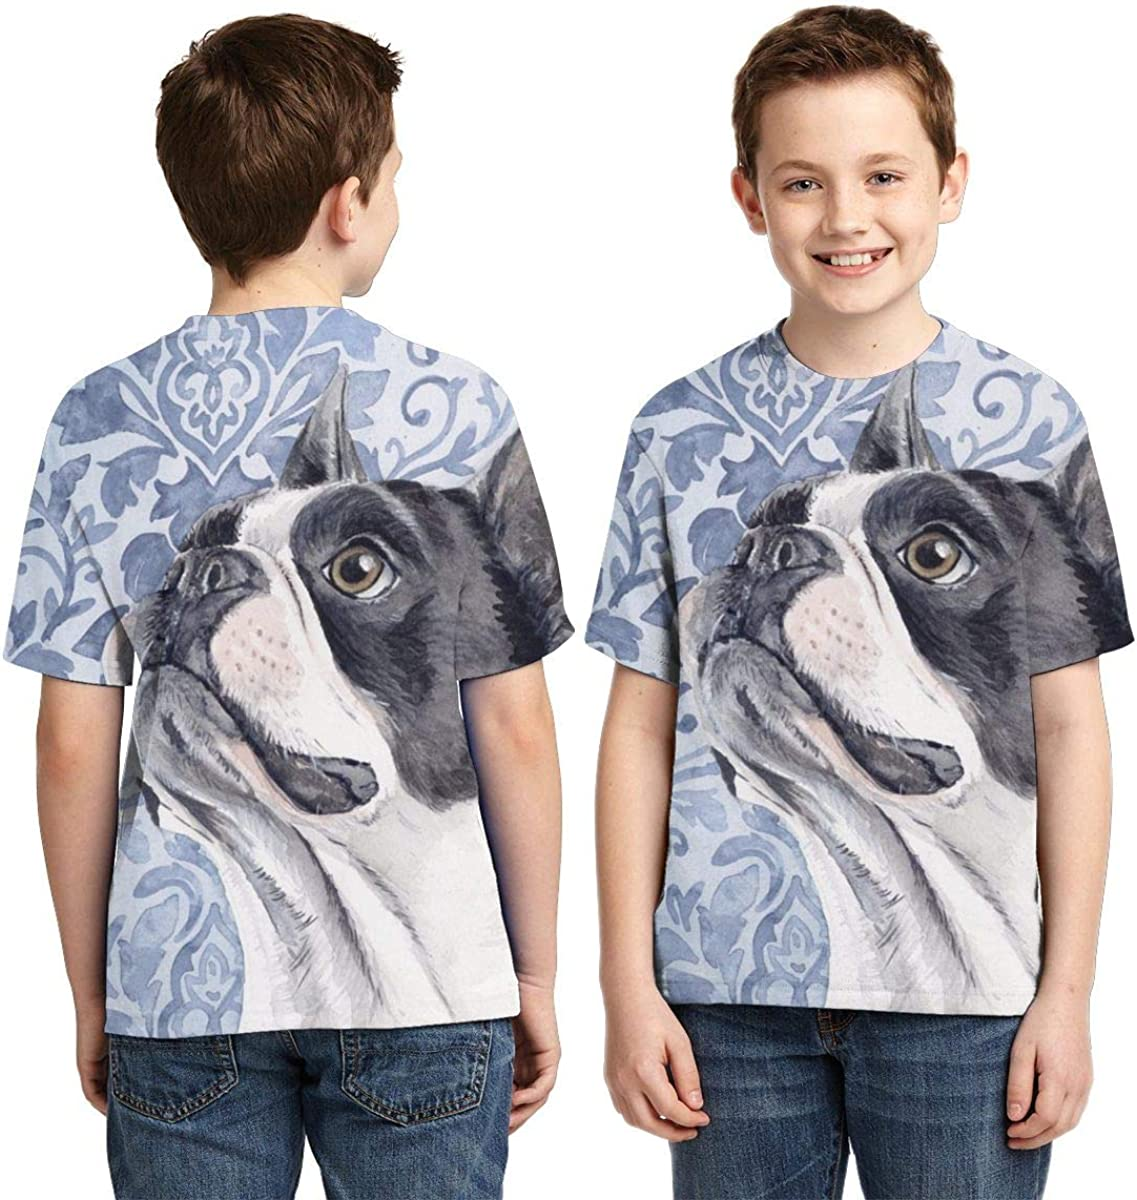 AMODECO Boston Terrier 3D Printed Tee T-Shirt for Youth Teenager Boys Girls